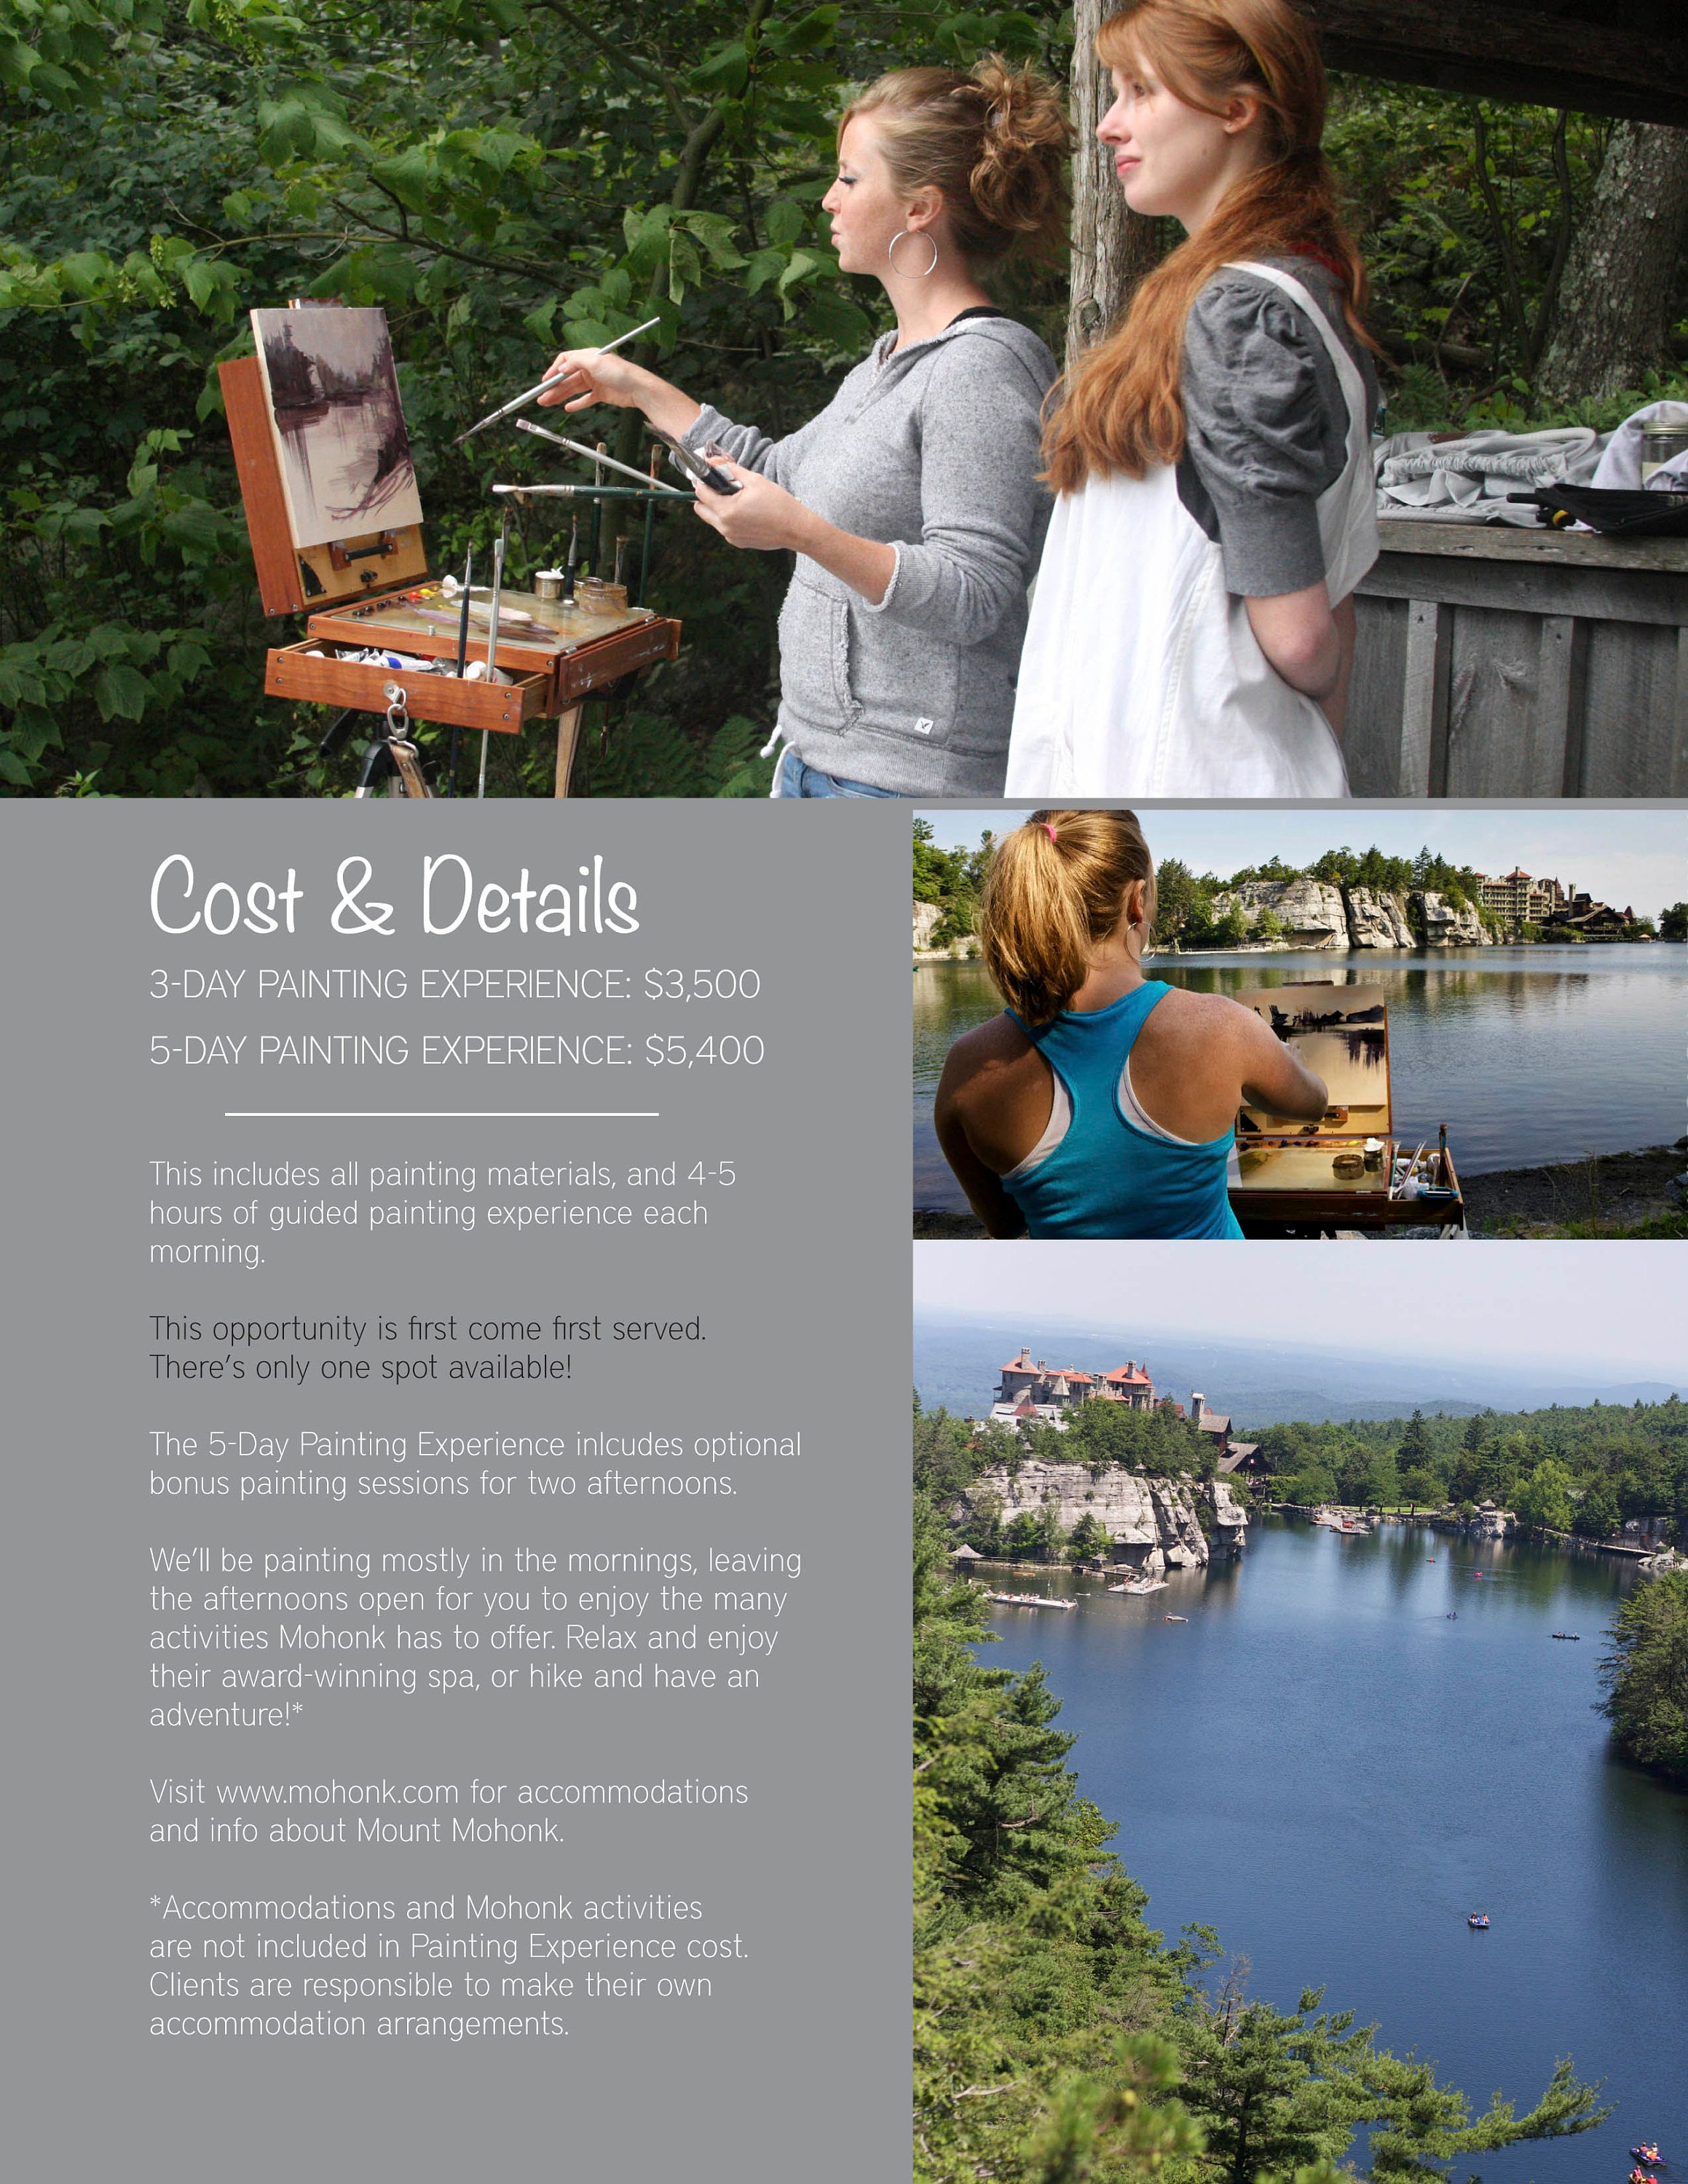 Cost & Details  3-Day Painting Experience: $3,500  5-Day Painting Experience: $5,400   This includes all painting materials, and 4-5 hours of guided painting experience each morning.   This opportunity is first come first served. There's only one spot available!  The 5-Day Painting Experience inlcudes optional bonus painting sessions for two afternoons.   We'll be painting mostly in the mornings, leaving the afternoons open for you to enjoy the many activities Mohonk has to offer. Relax and enjoy their award-winning spa, or hike and have an adventure!*  Visit www.mohonk.com for accommodations and info about Mount Mohonk.  *Accommodations and Mohonk activities are not included in Painting Experience cost. Clients are responsible to make their own accommodation arrangements.